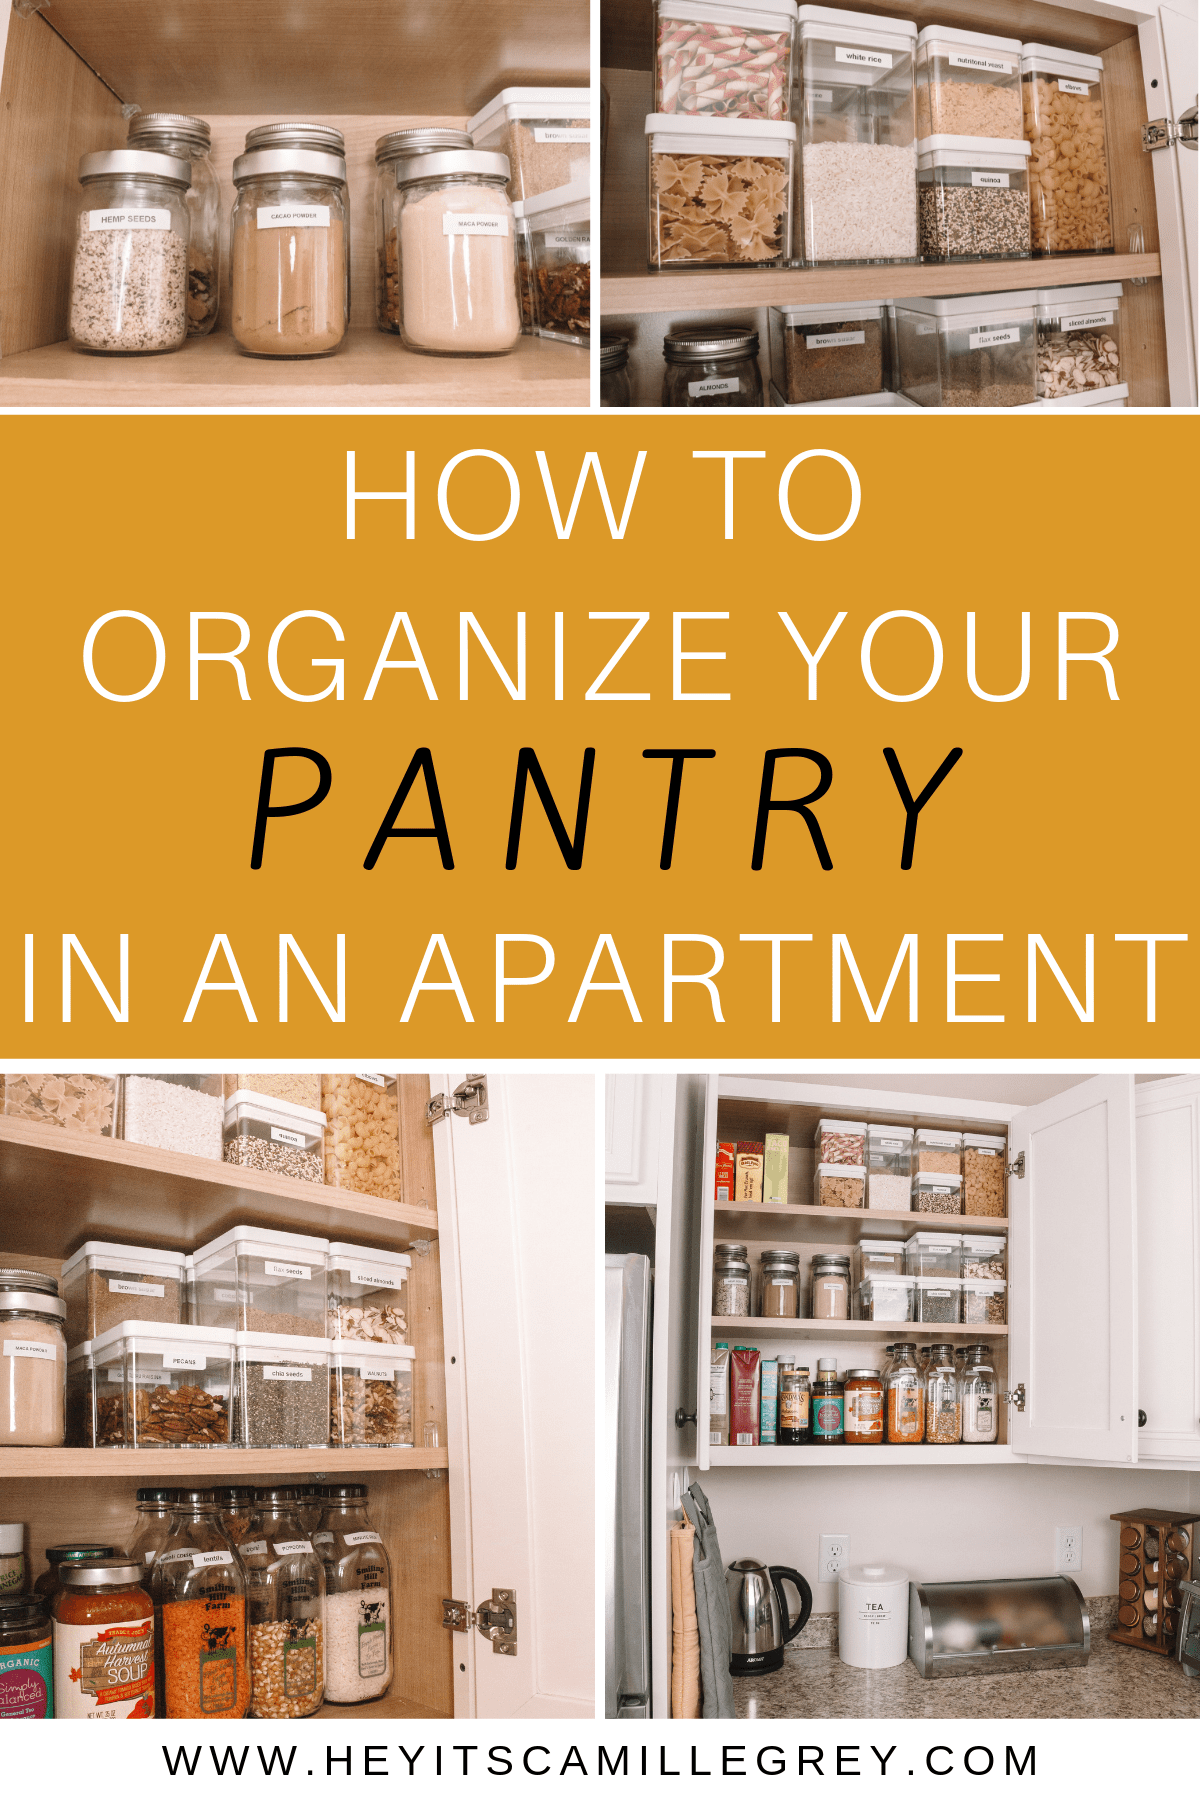 How to Organize Your Pantry in an Apartment | Eco Friendly + ...